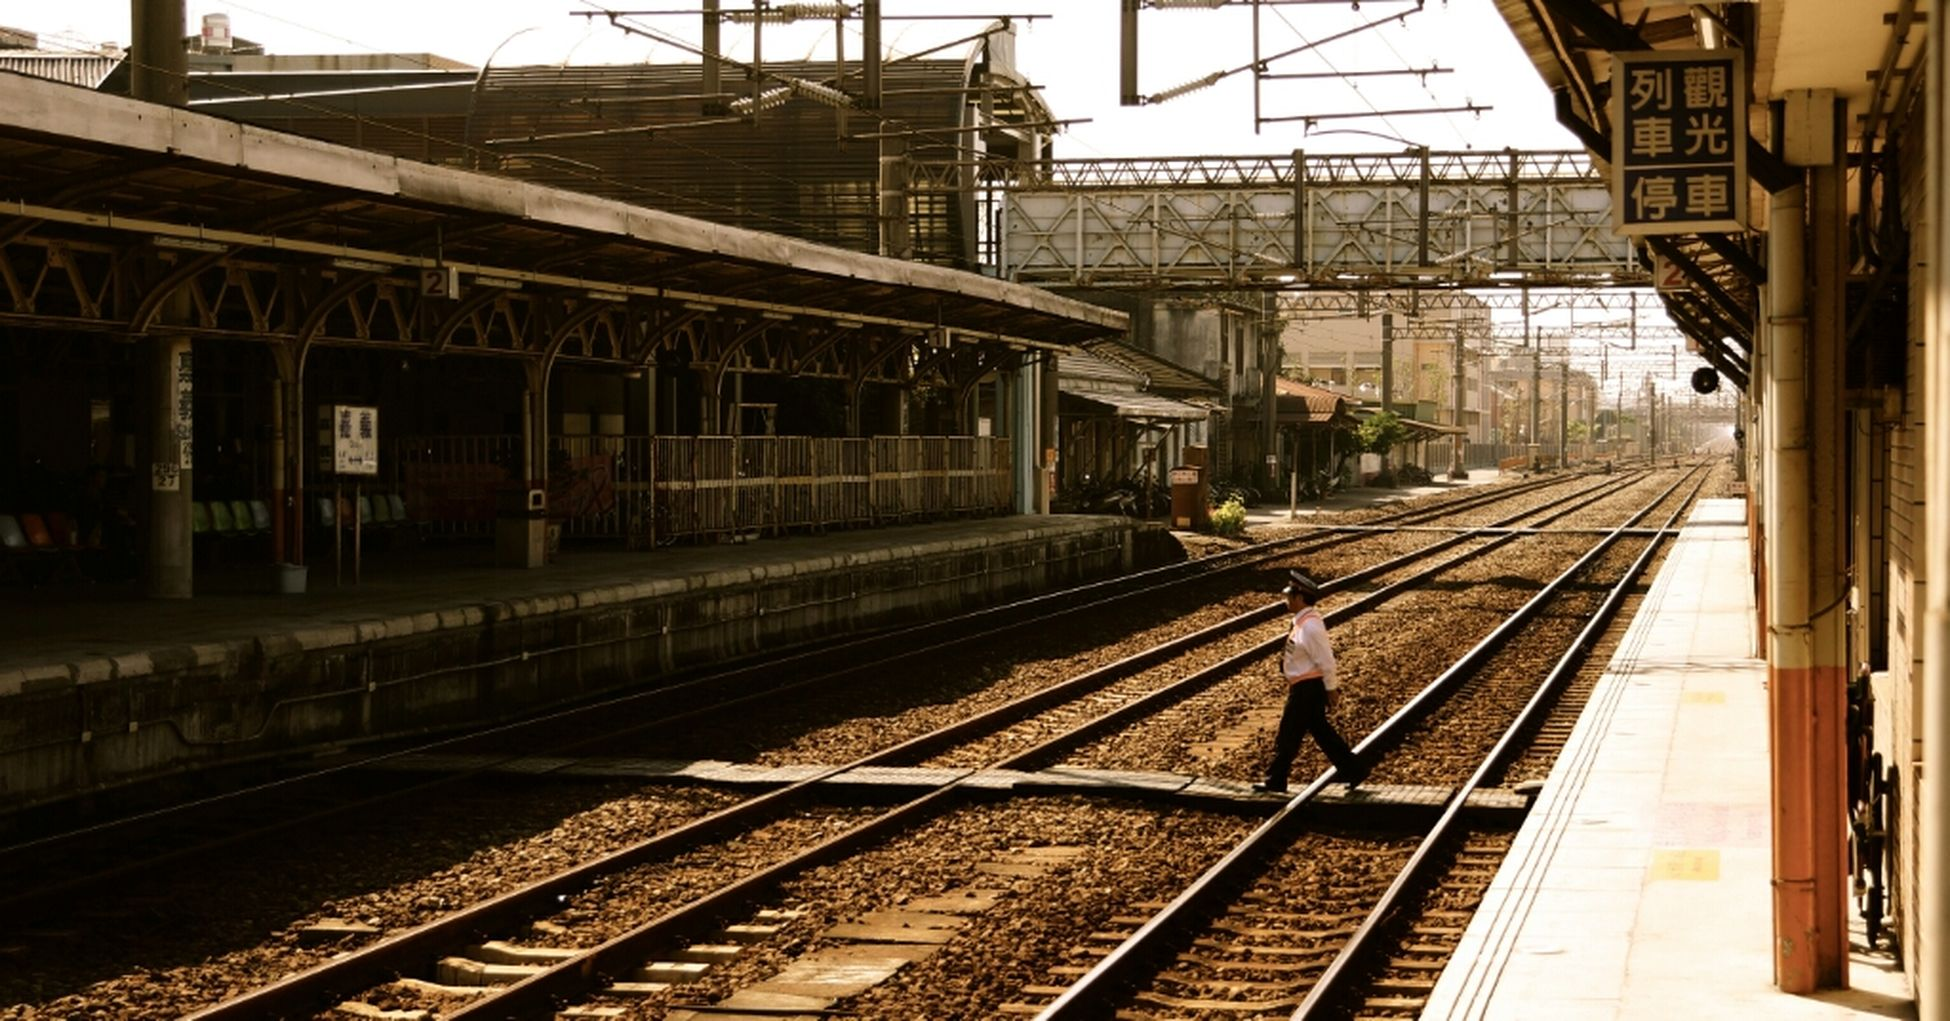 railroad track, rail transportation, railroad station platform, public transportation, railroad station, transportation, built structure, architecture, building exterior, train - vehicle, railway track, city, train, travel, passenger train, railway station, public transport, the way forward, diminishing perspective, sky